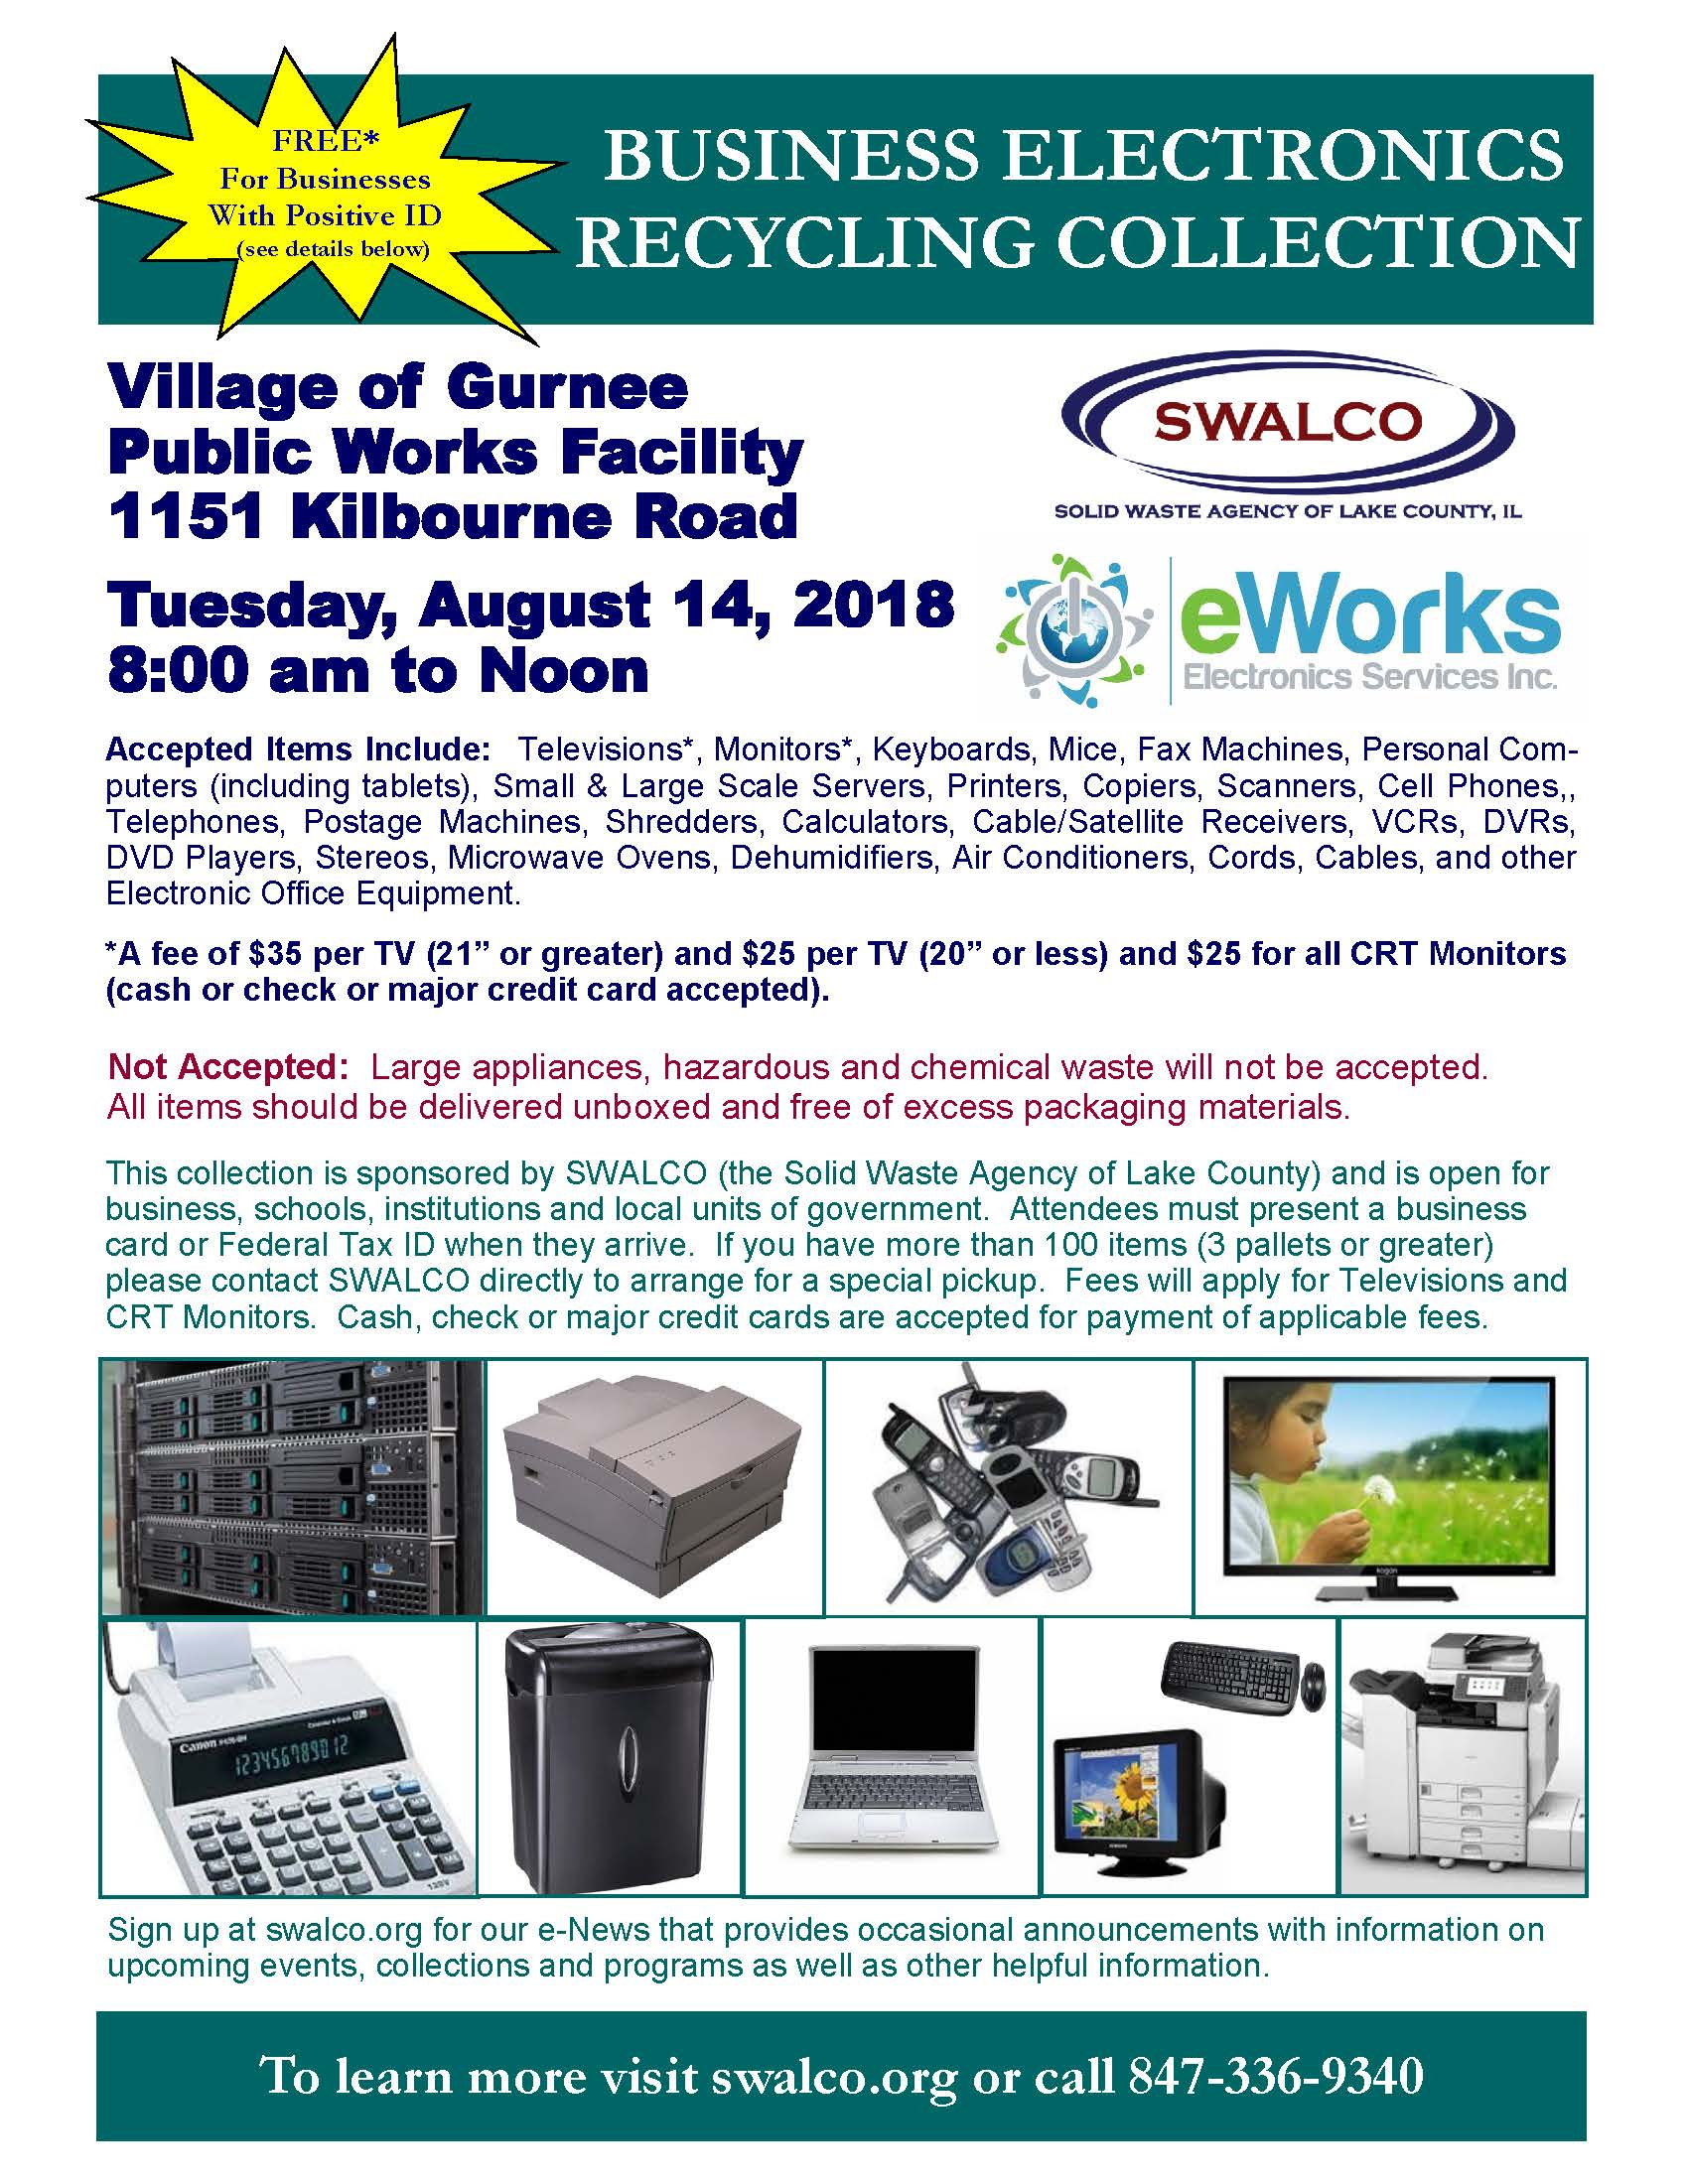 Electronics E-Works Village of Gurnee August 14 2018